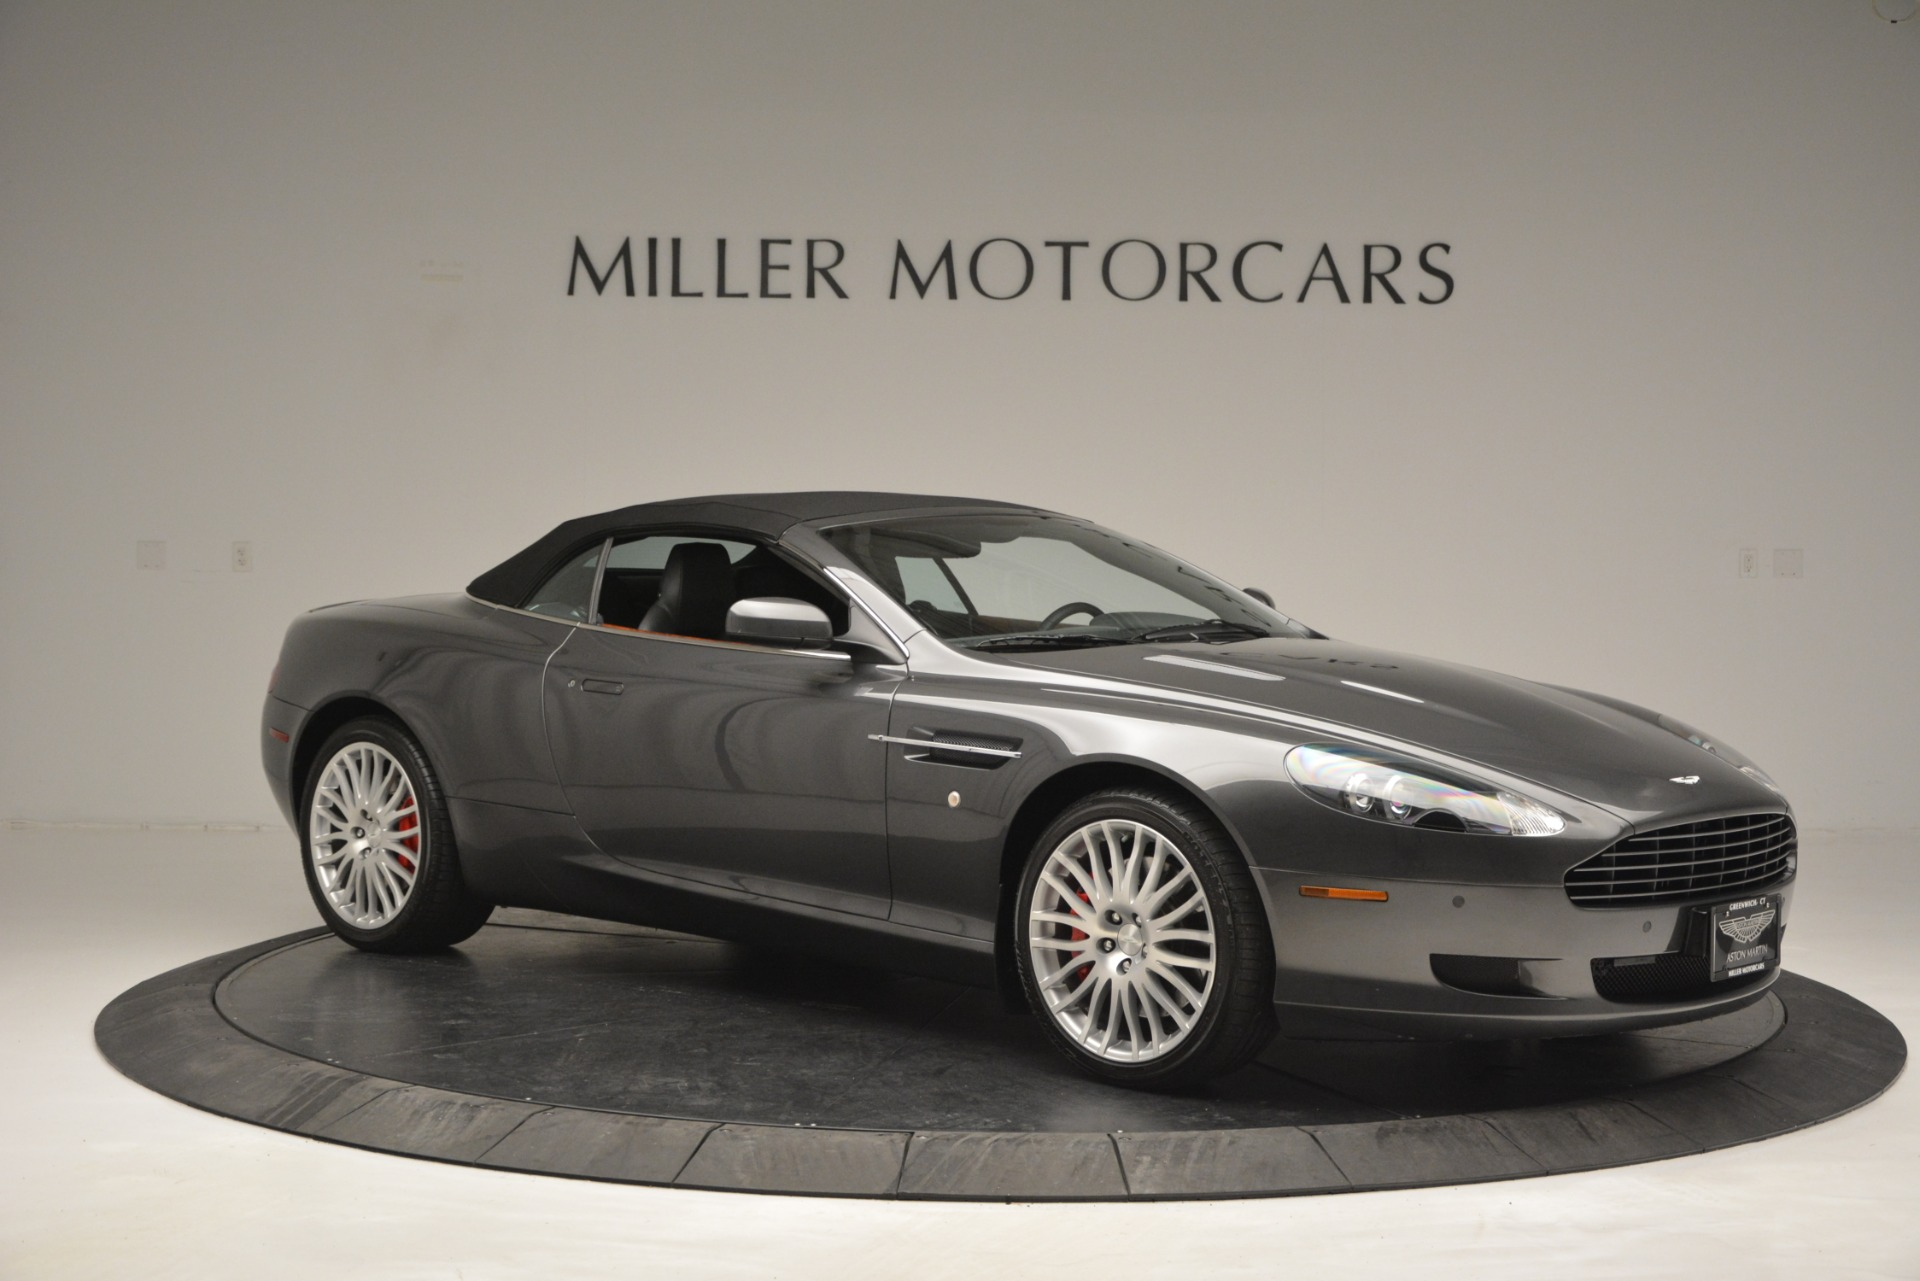 Used 2009 Aston Martin DB9 Convertible For Sale In Westport, CT 2930_p14